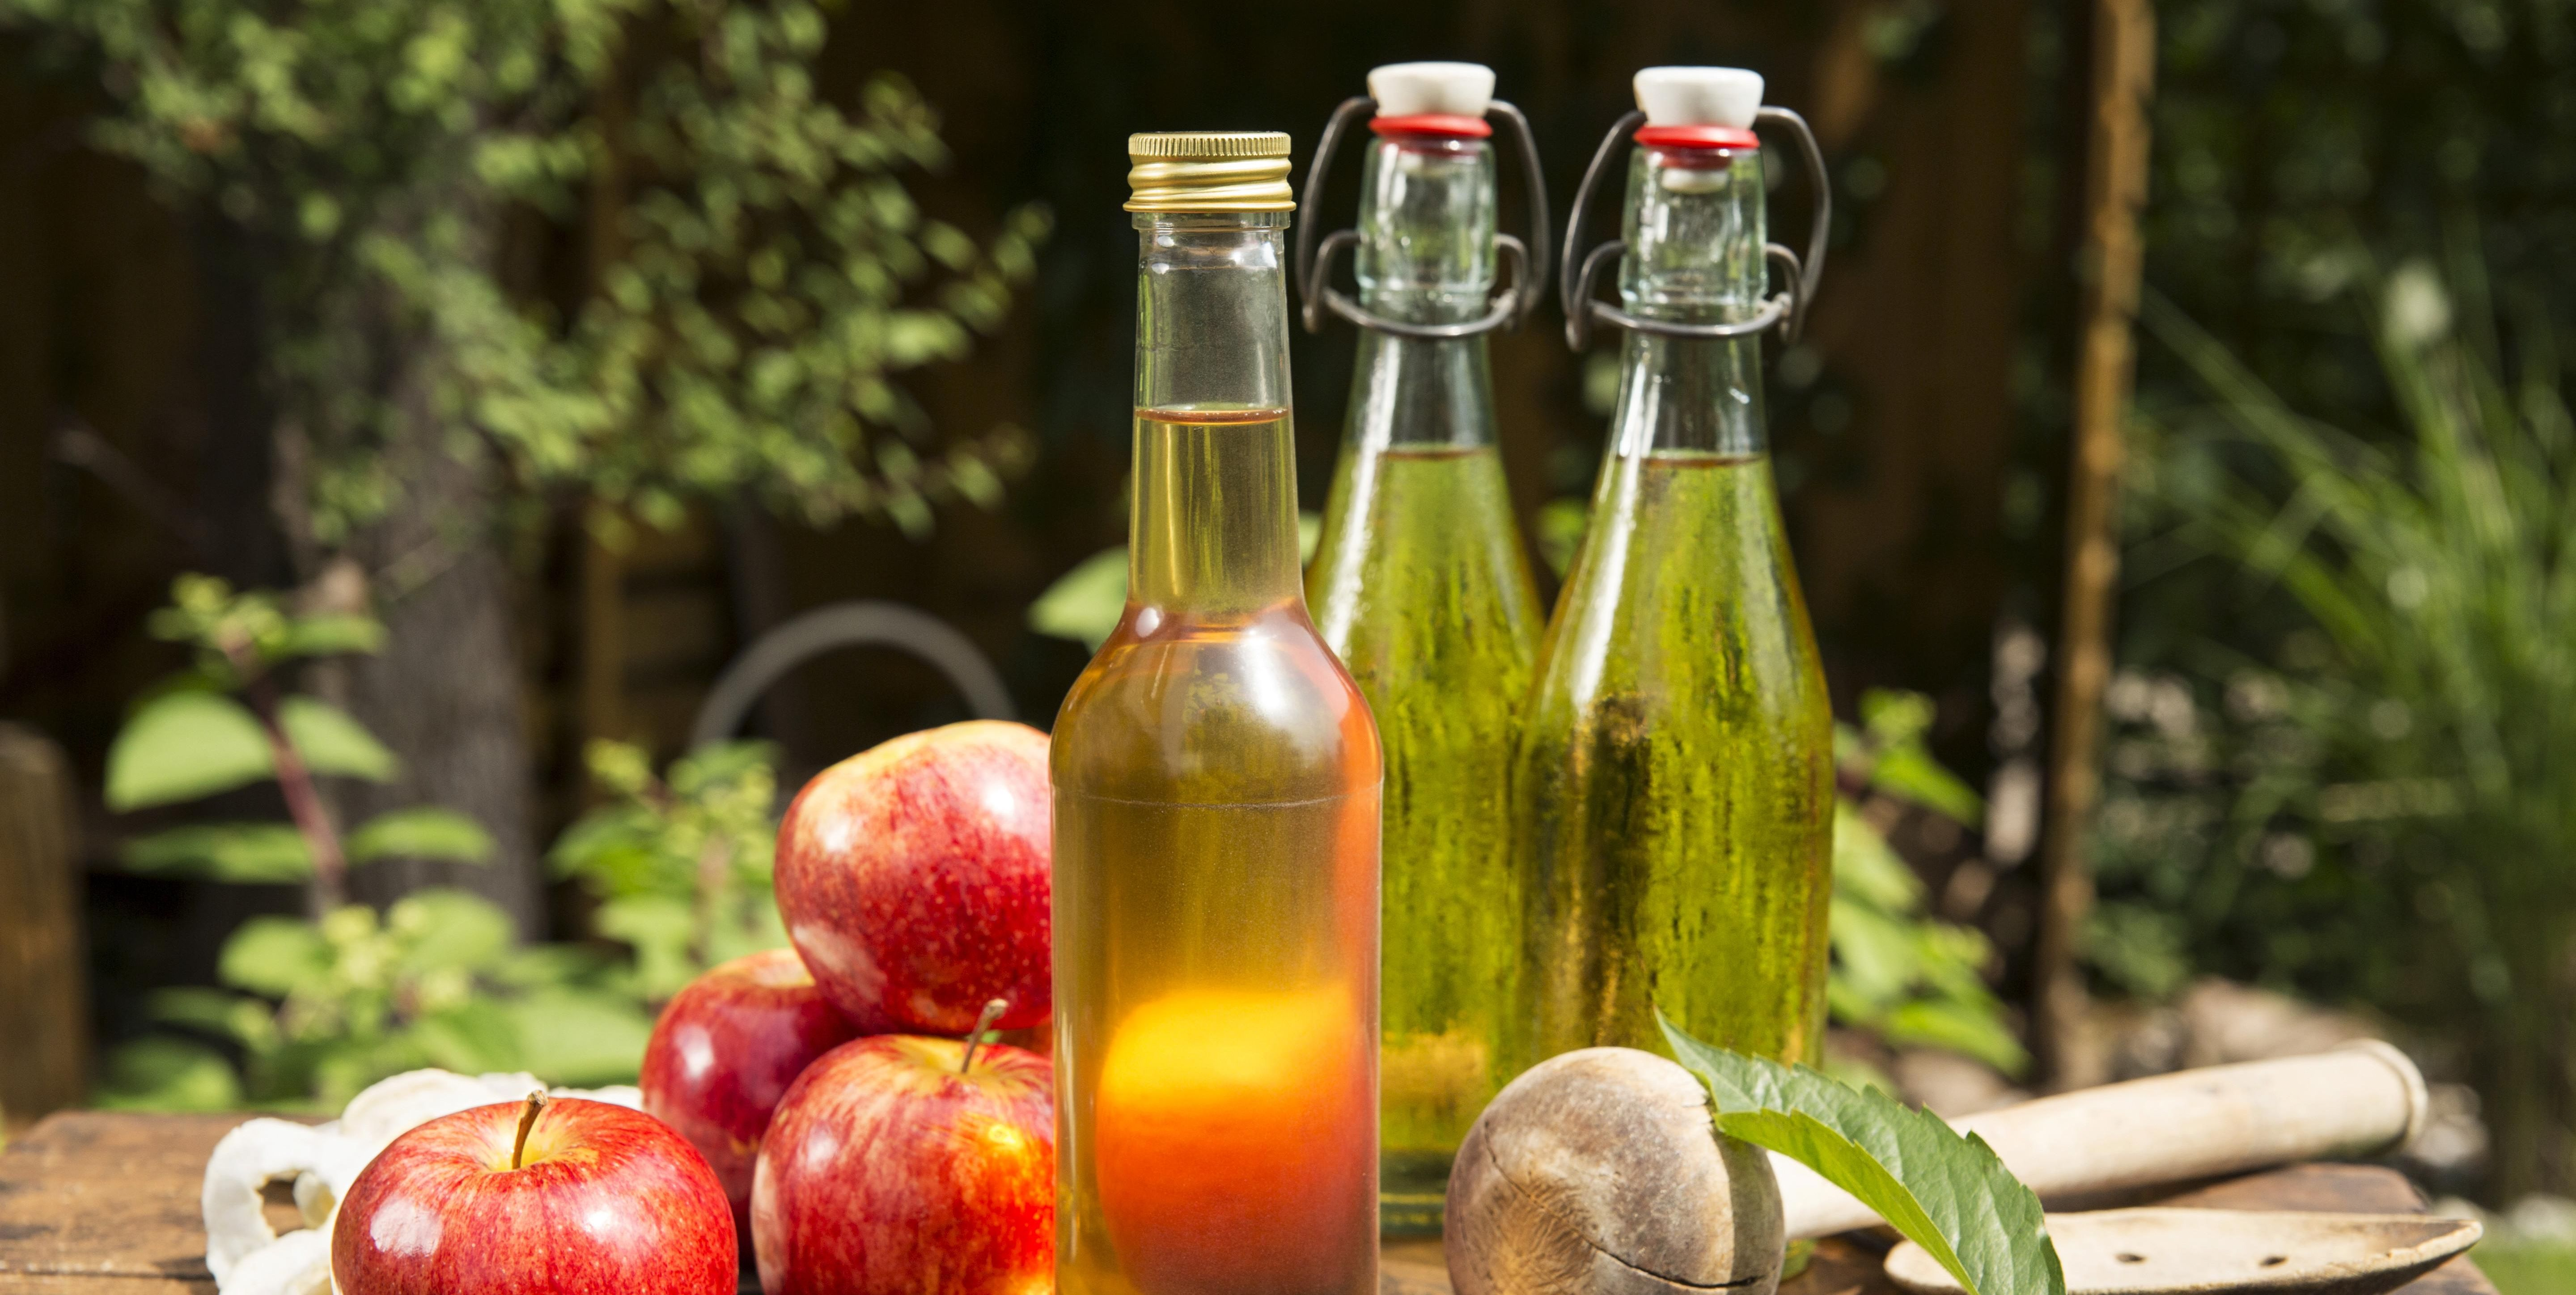 Apples with apple cider vinegar and apple juice on a wooden box in the garden, Germany